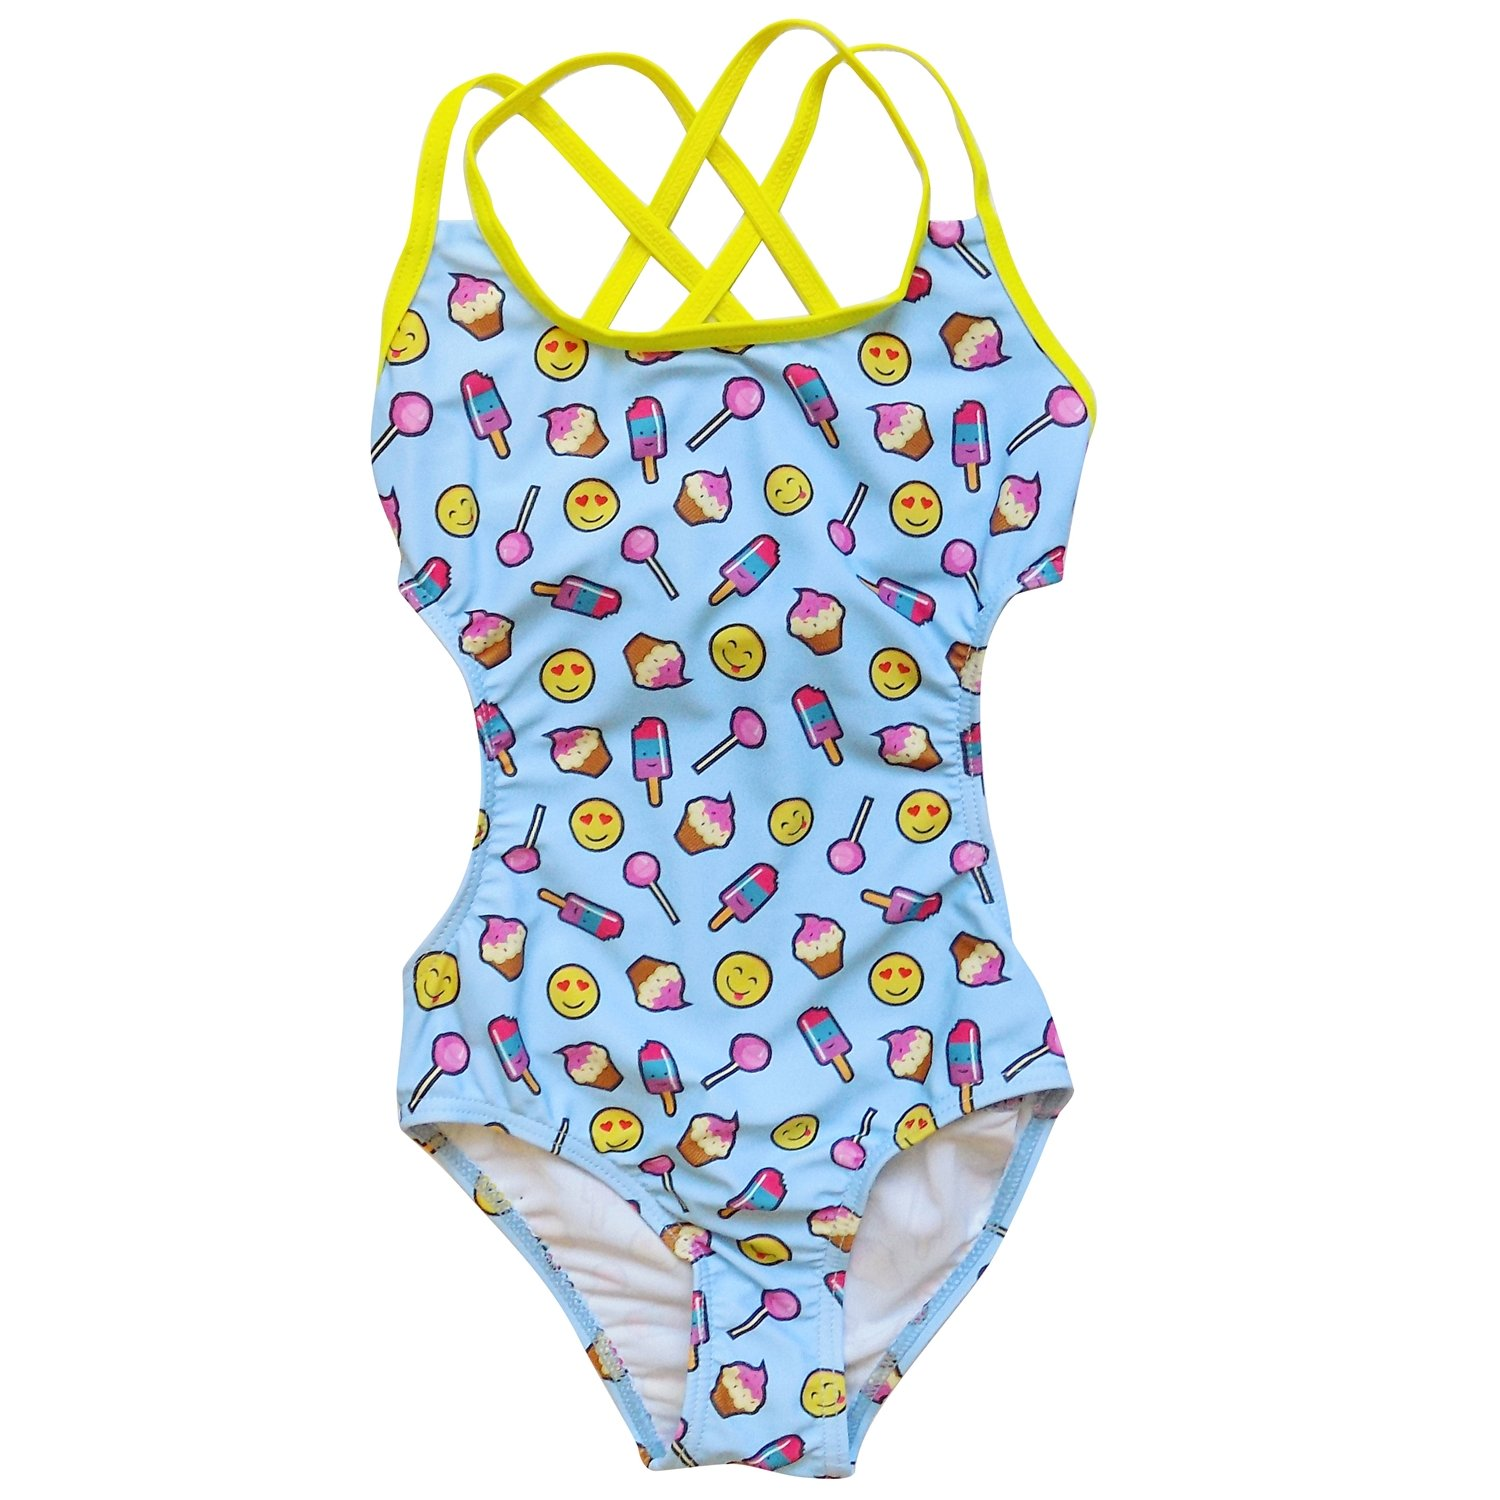 So Sydney Swim Girls' One Piece Cut Out Cross Back Tie Swimsuit Bathing Suit